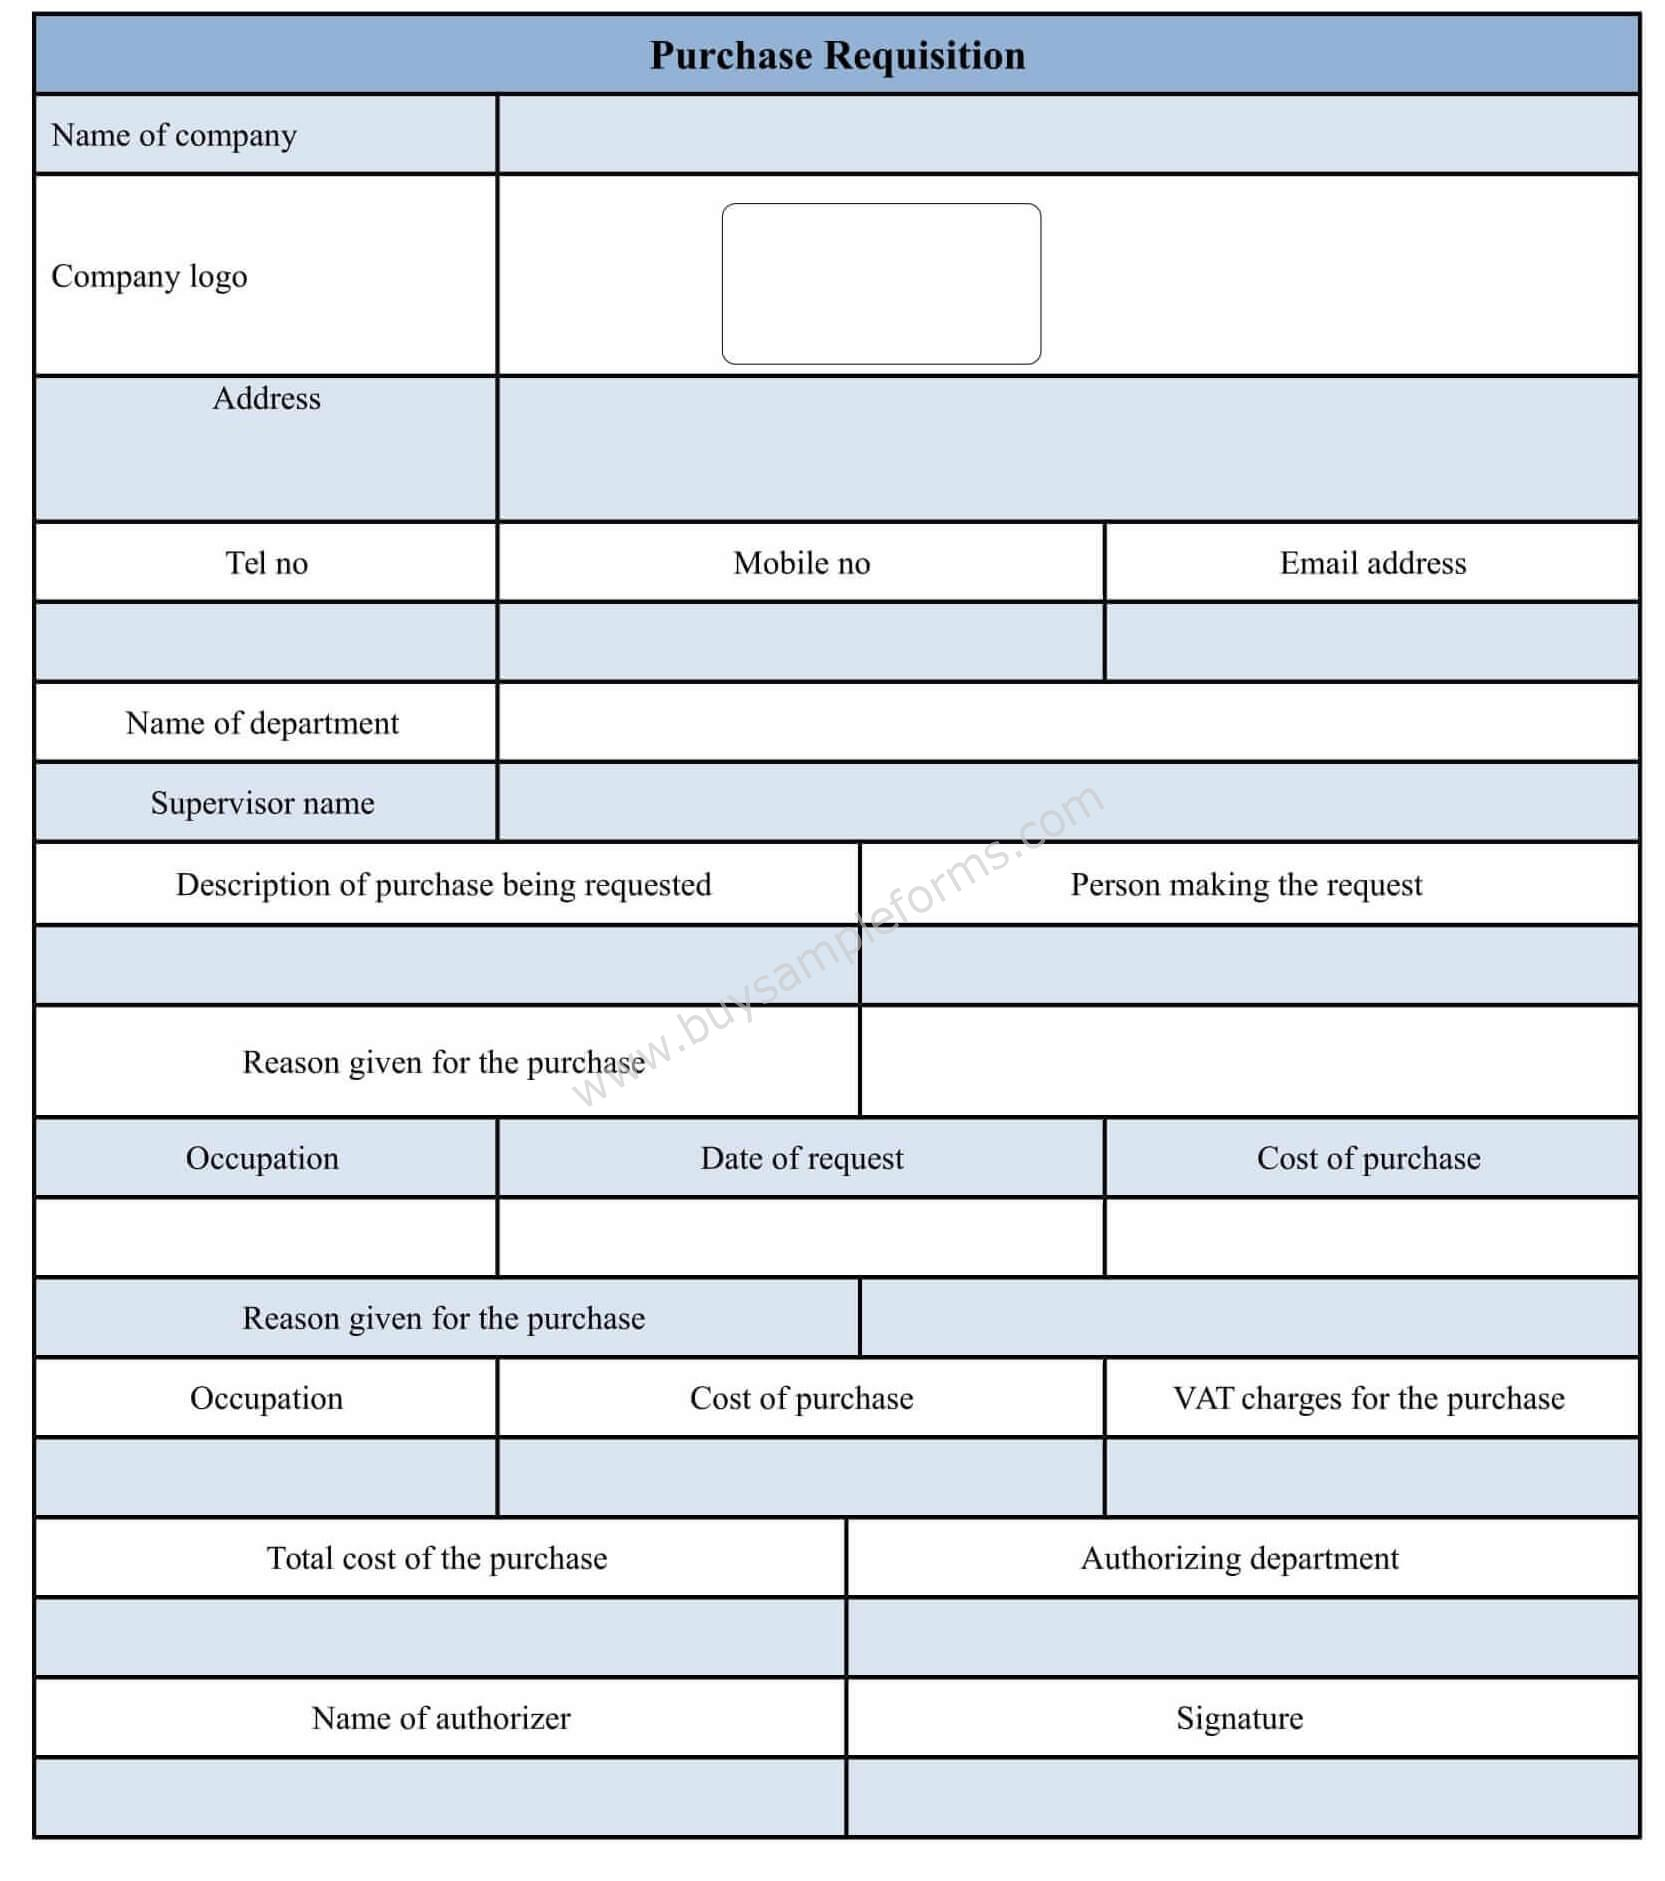 Purchase requisition form template doc for Requisition form template download free